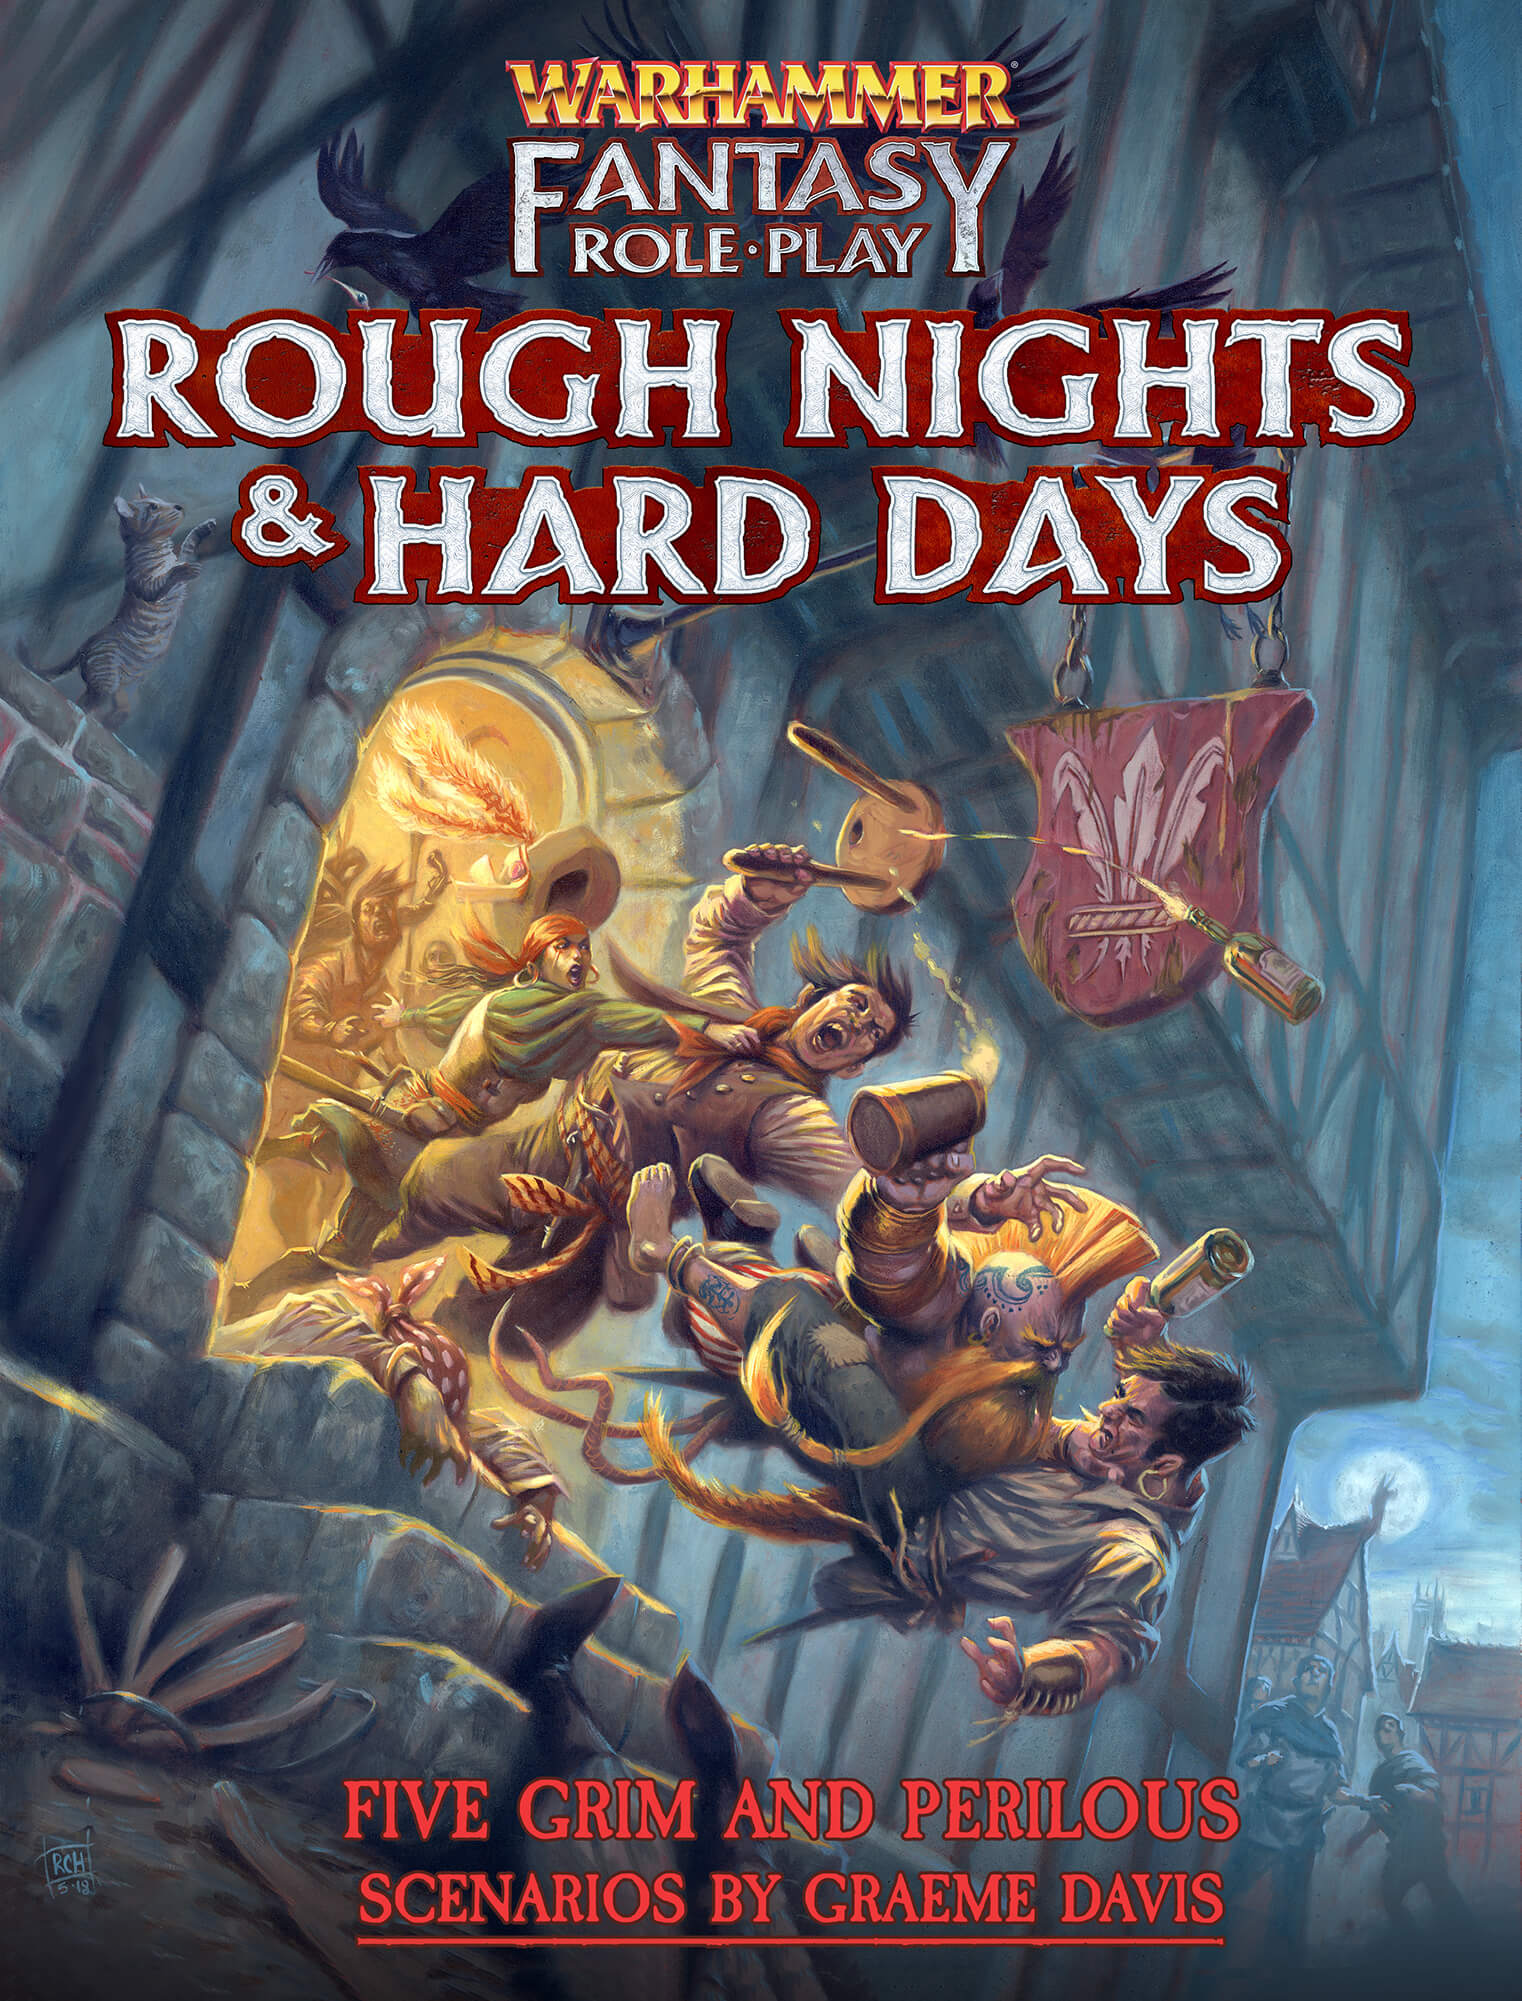 WFRP4 Rough Nights & Hard Days